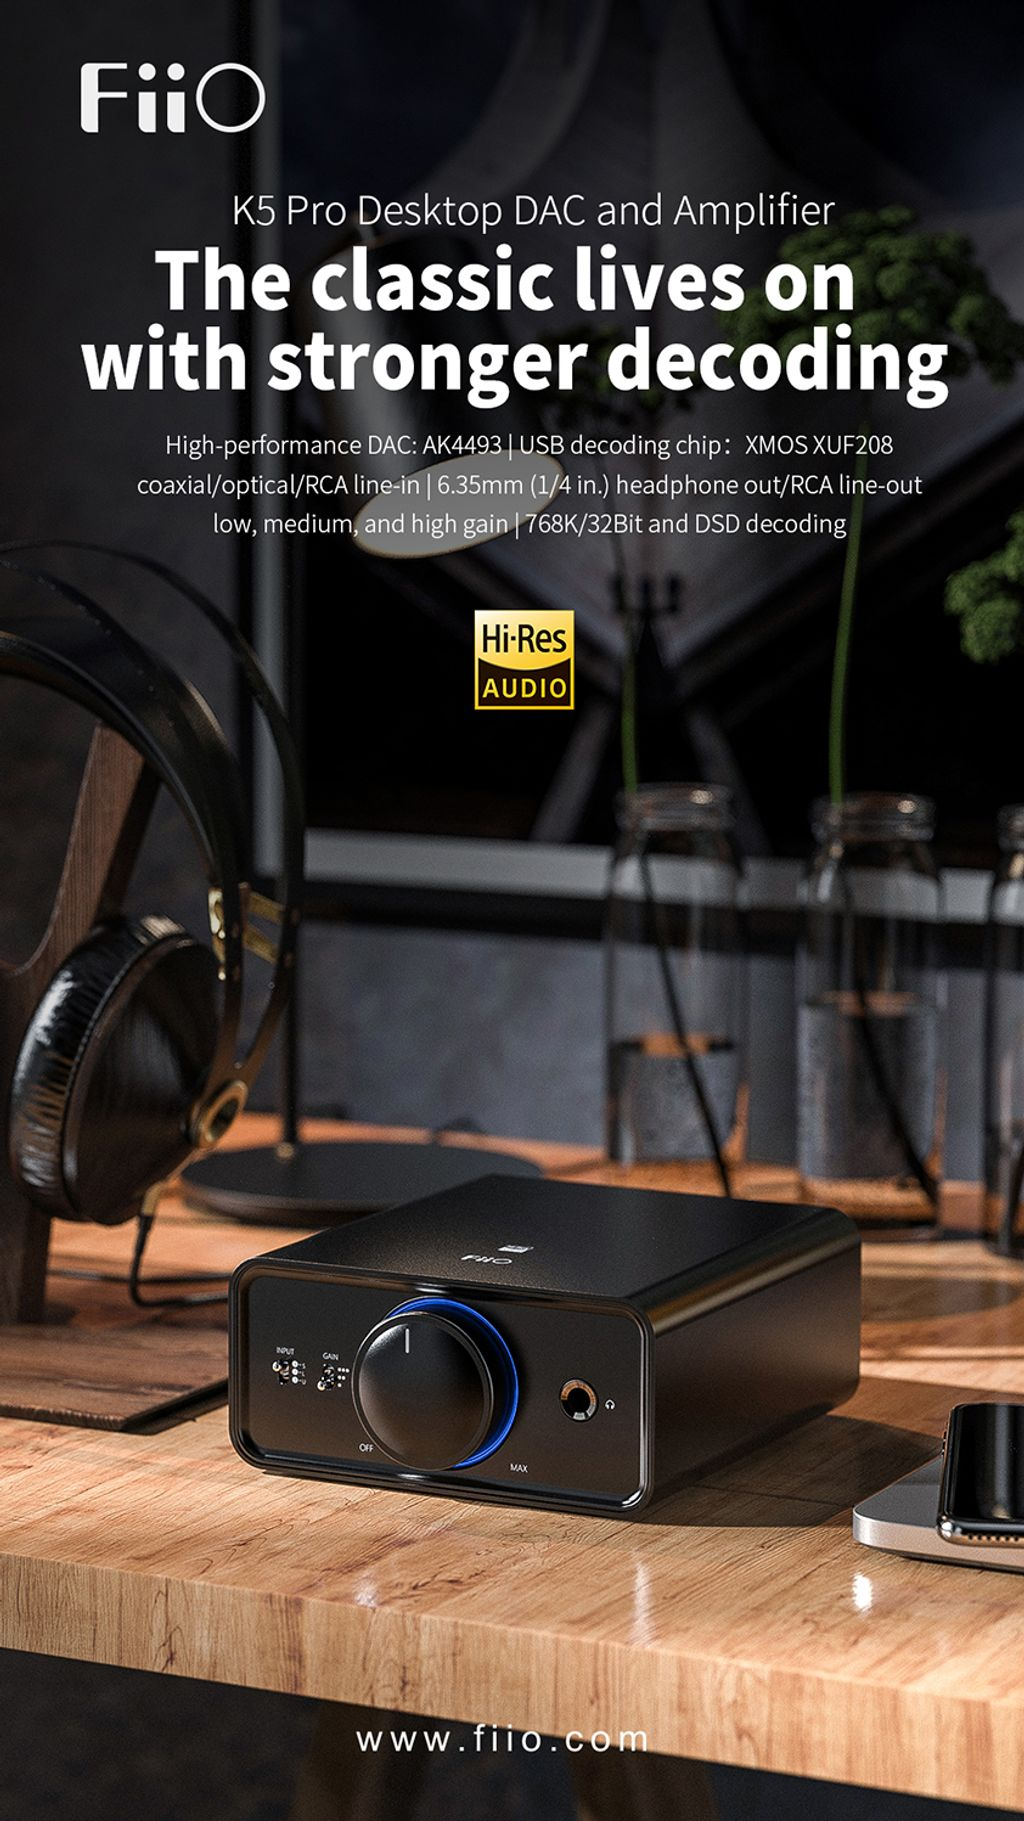 FiiO K5 Pro Desktop DAC and Amplifier is now available in Malaysia!